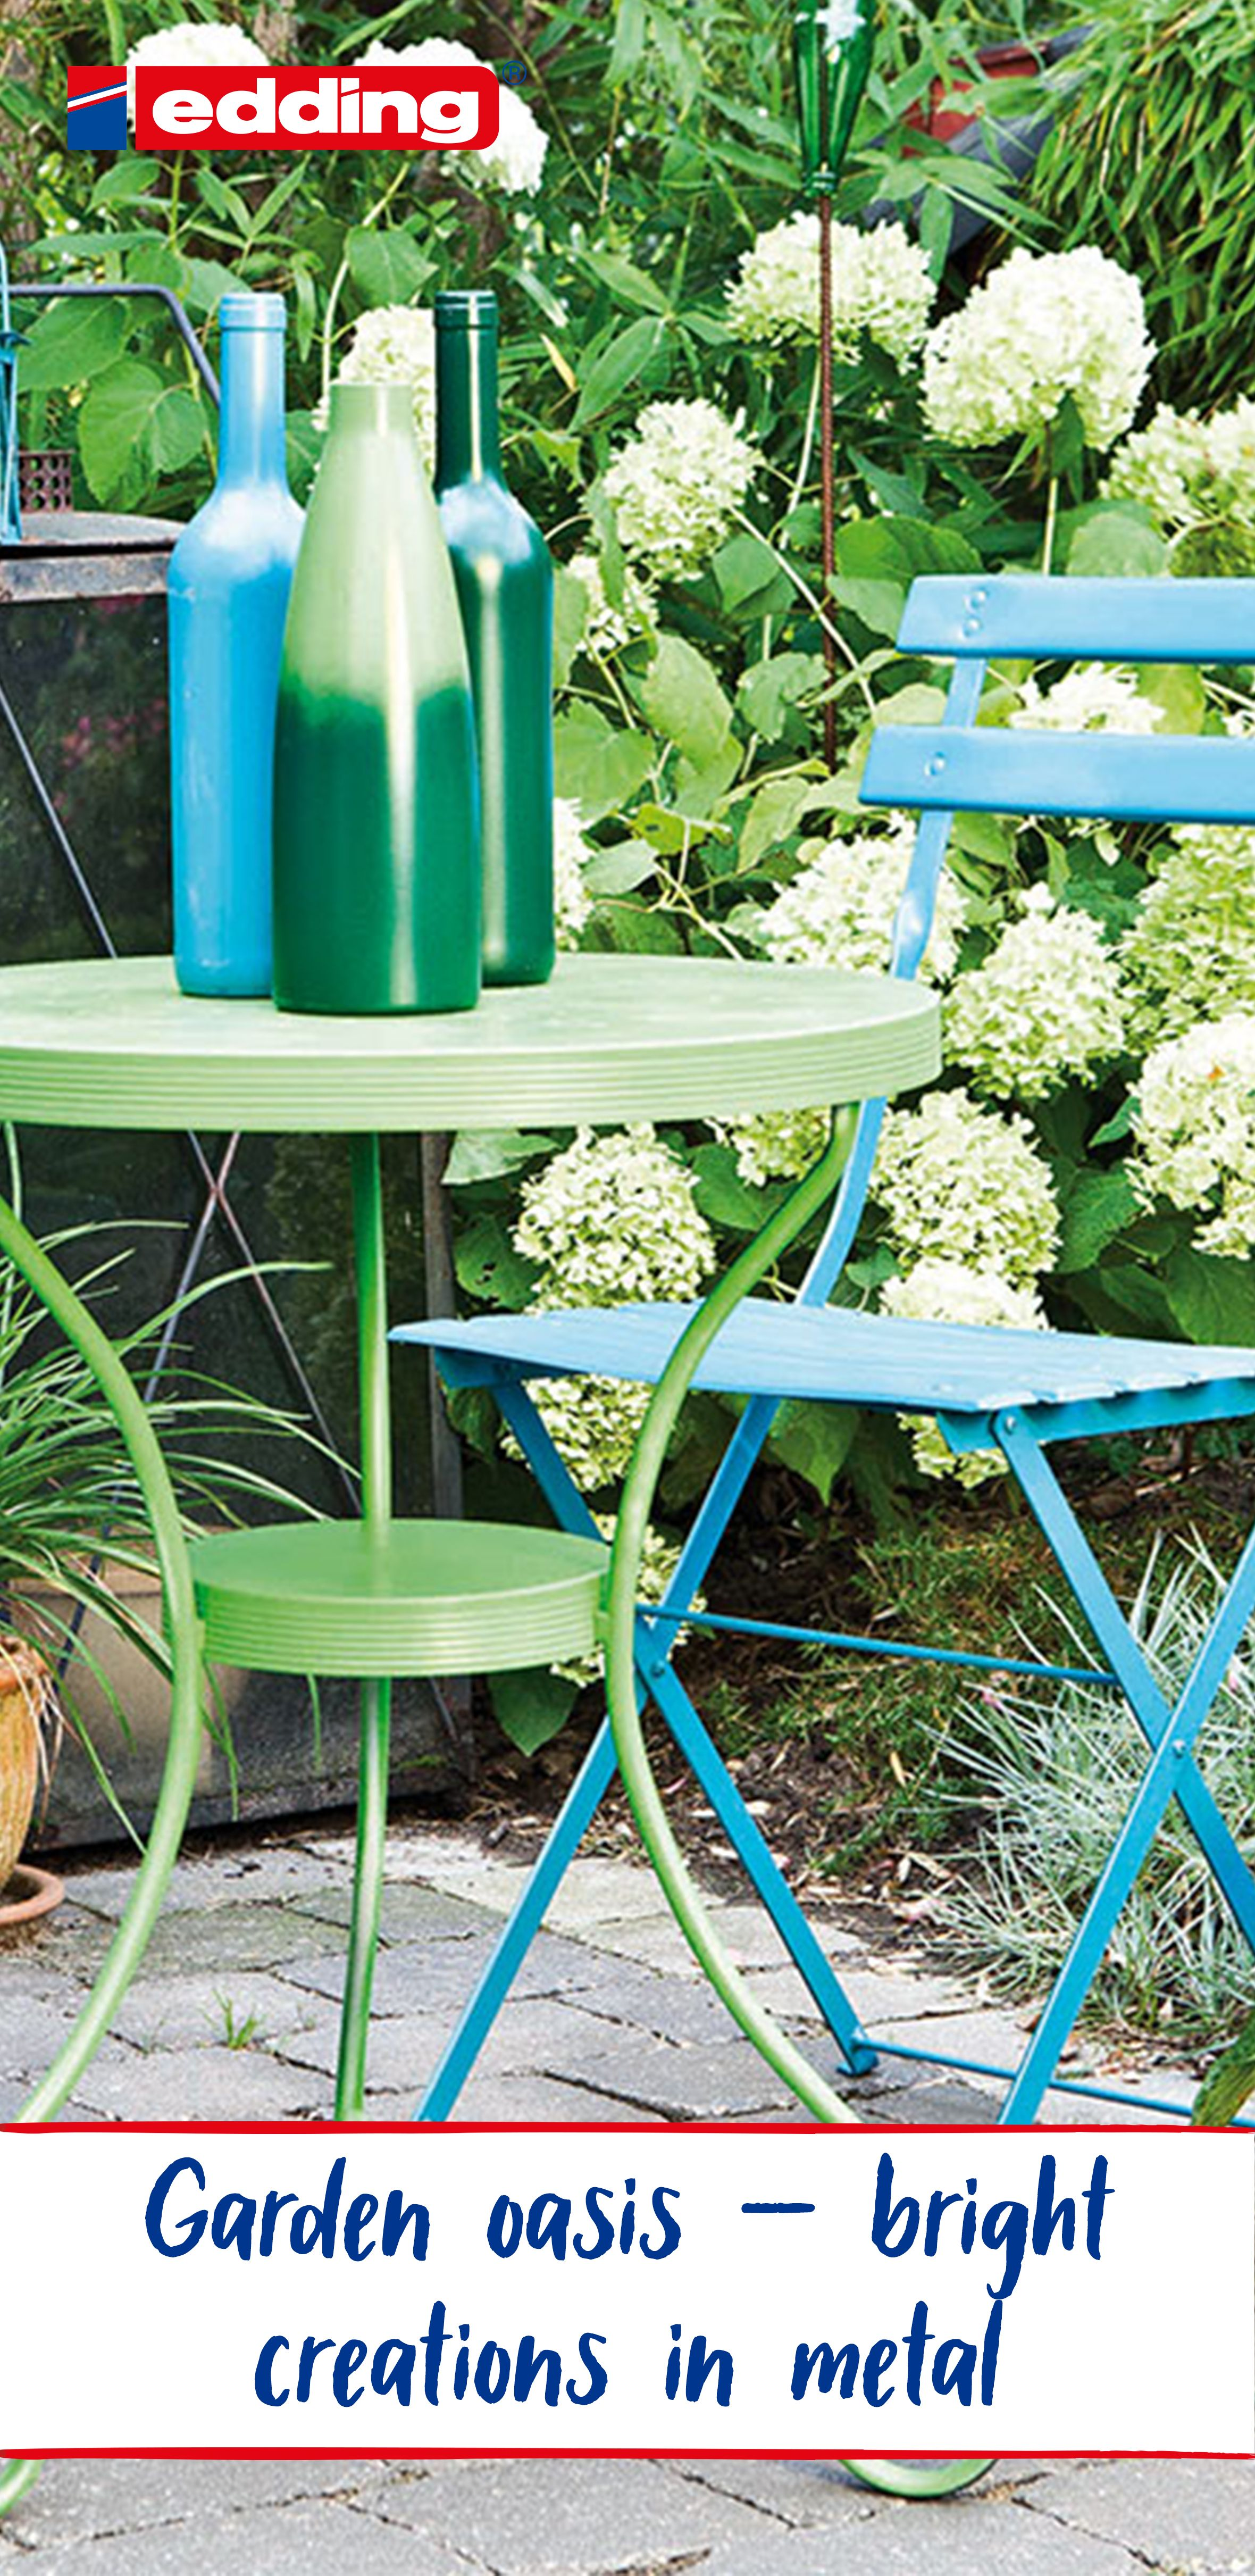 Garden Oasis Bright Creations In Metal Painted Garden Furniture Colorful Garden Garden Oasis